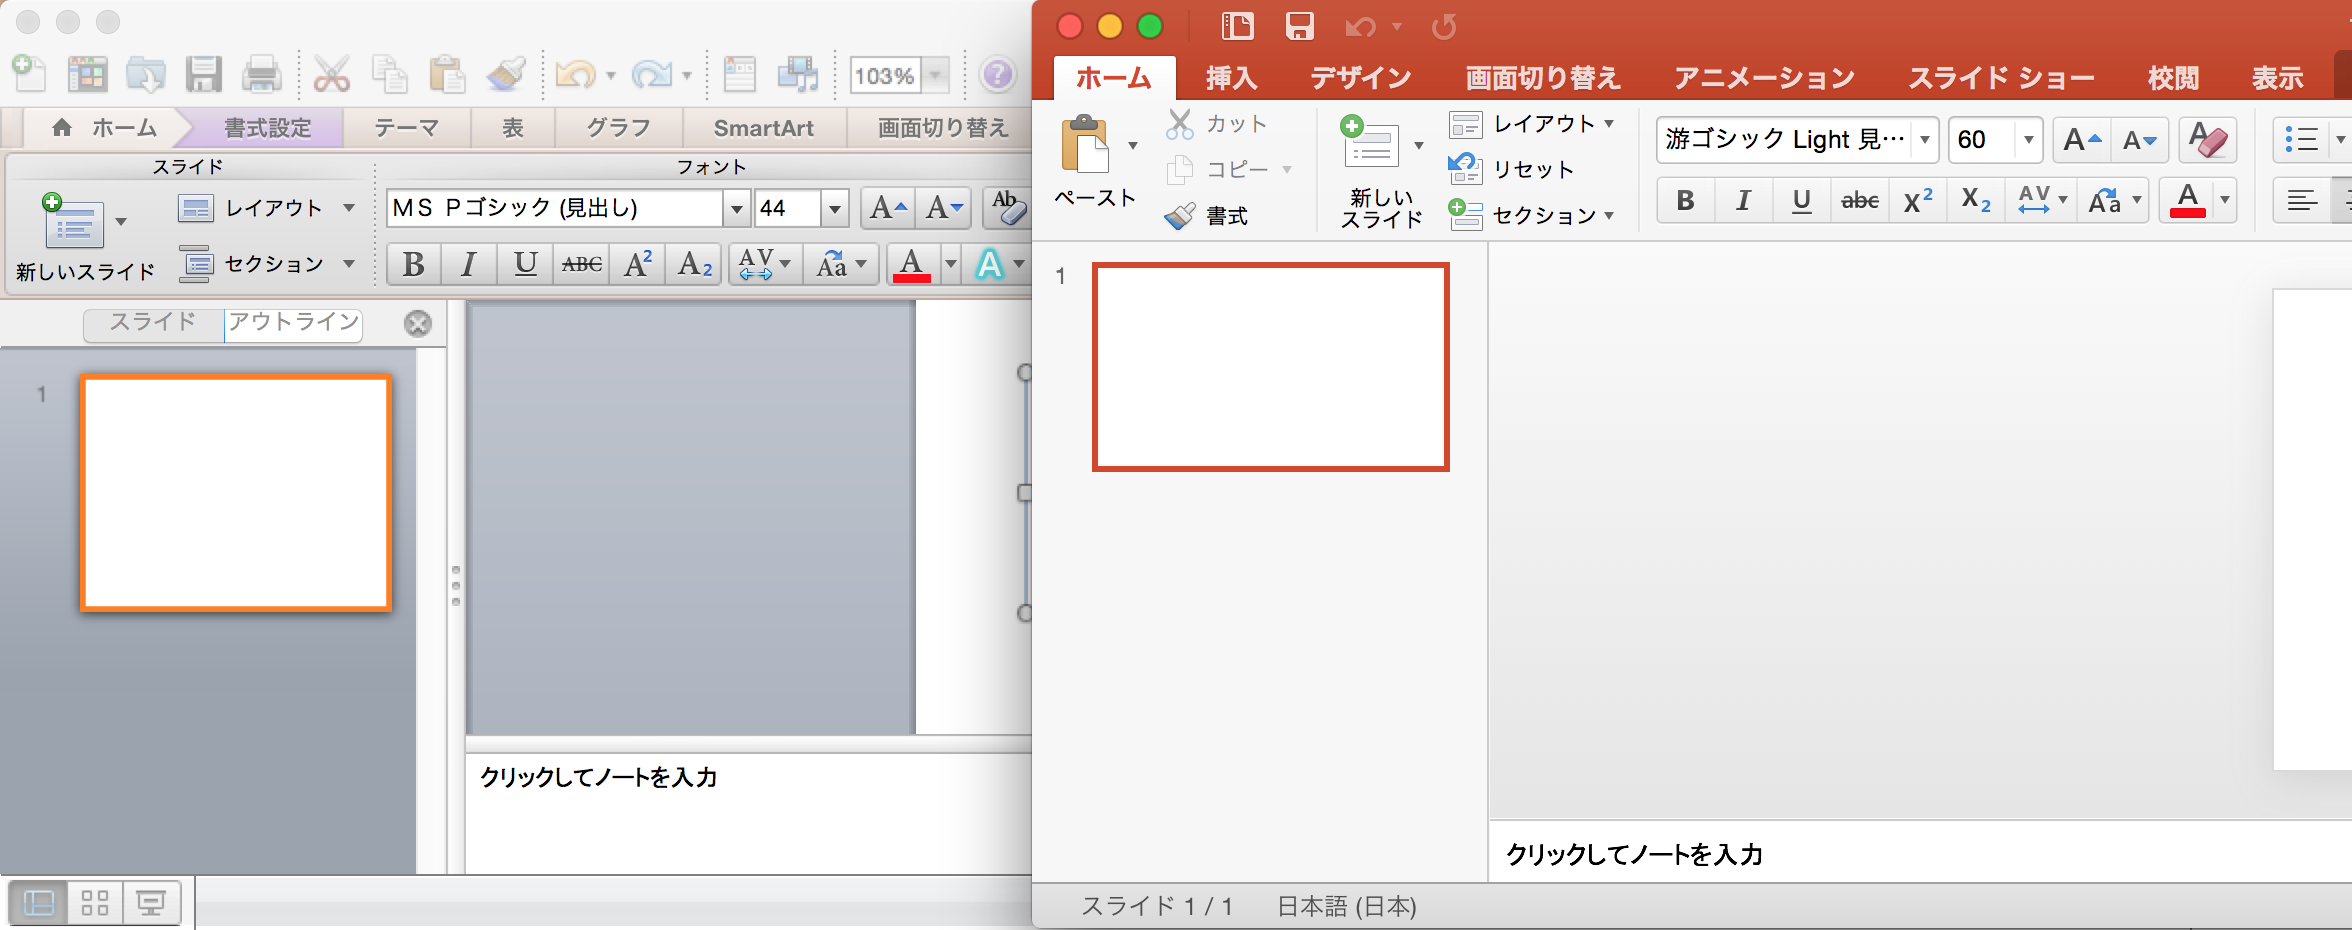 PowerPoint2016とPowerPoint2011のデフォルトフォント